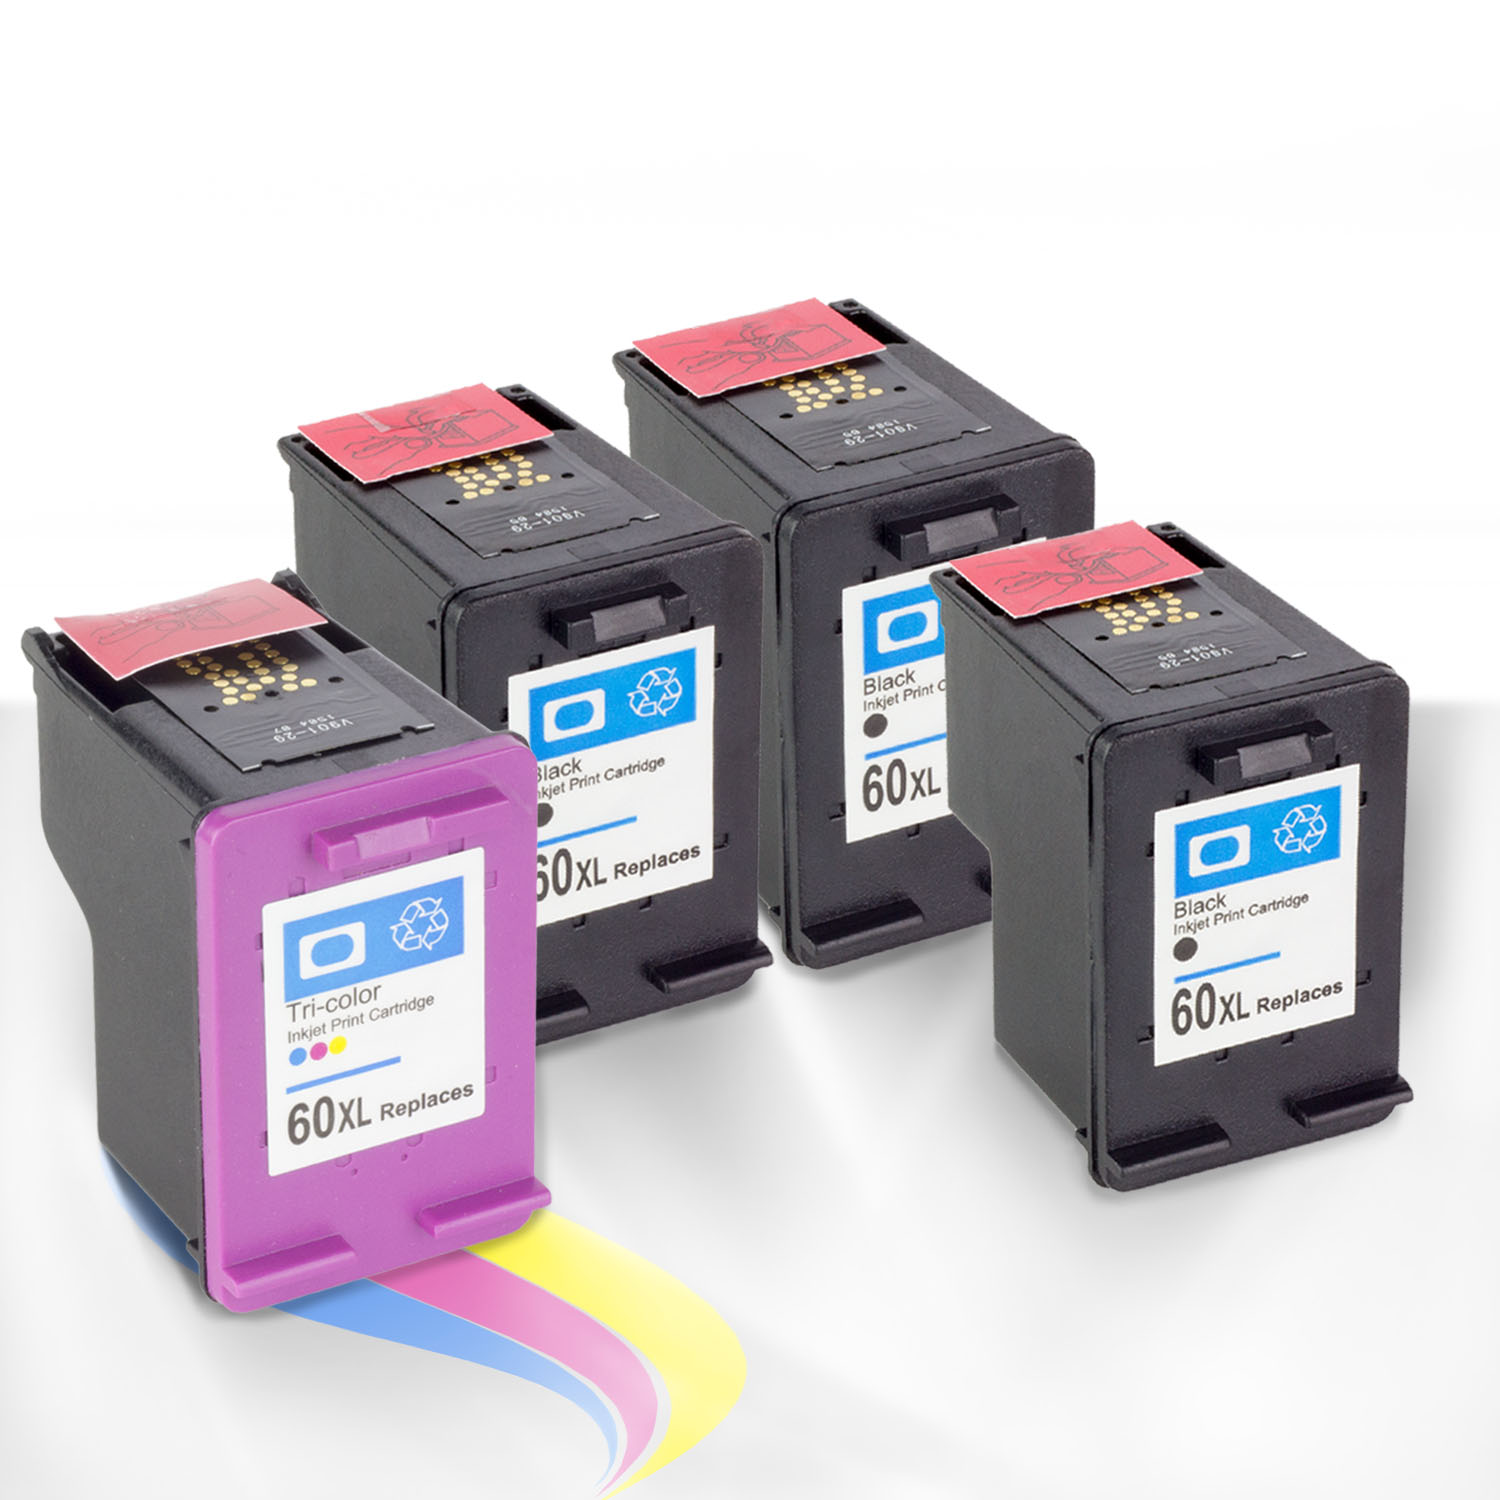 OfficeSmartInk No Worries Hassle Remanufactured 3PK Black HP 60XL CC641WN 1PK Color CC644W Excellent Yield Ink Cartridge Auto Reset